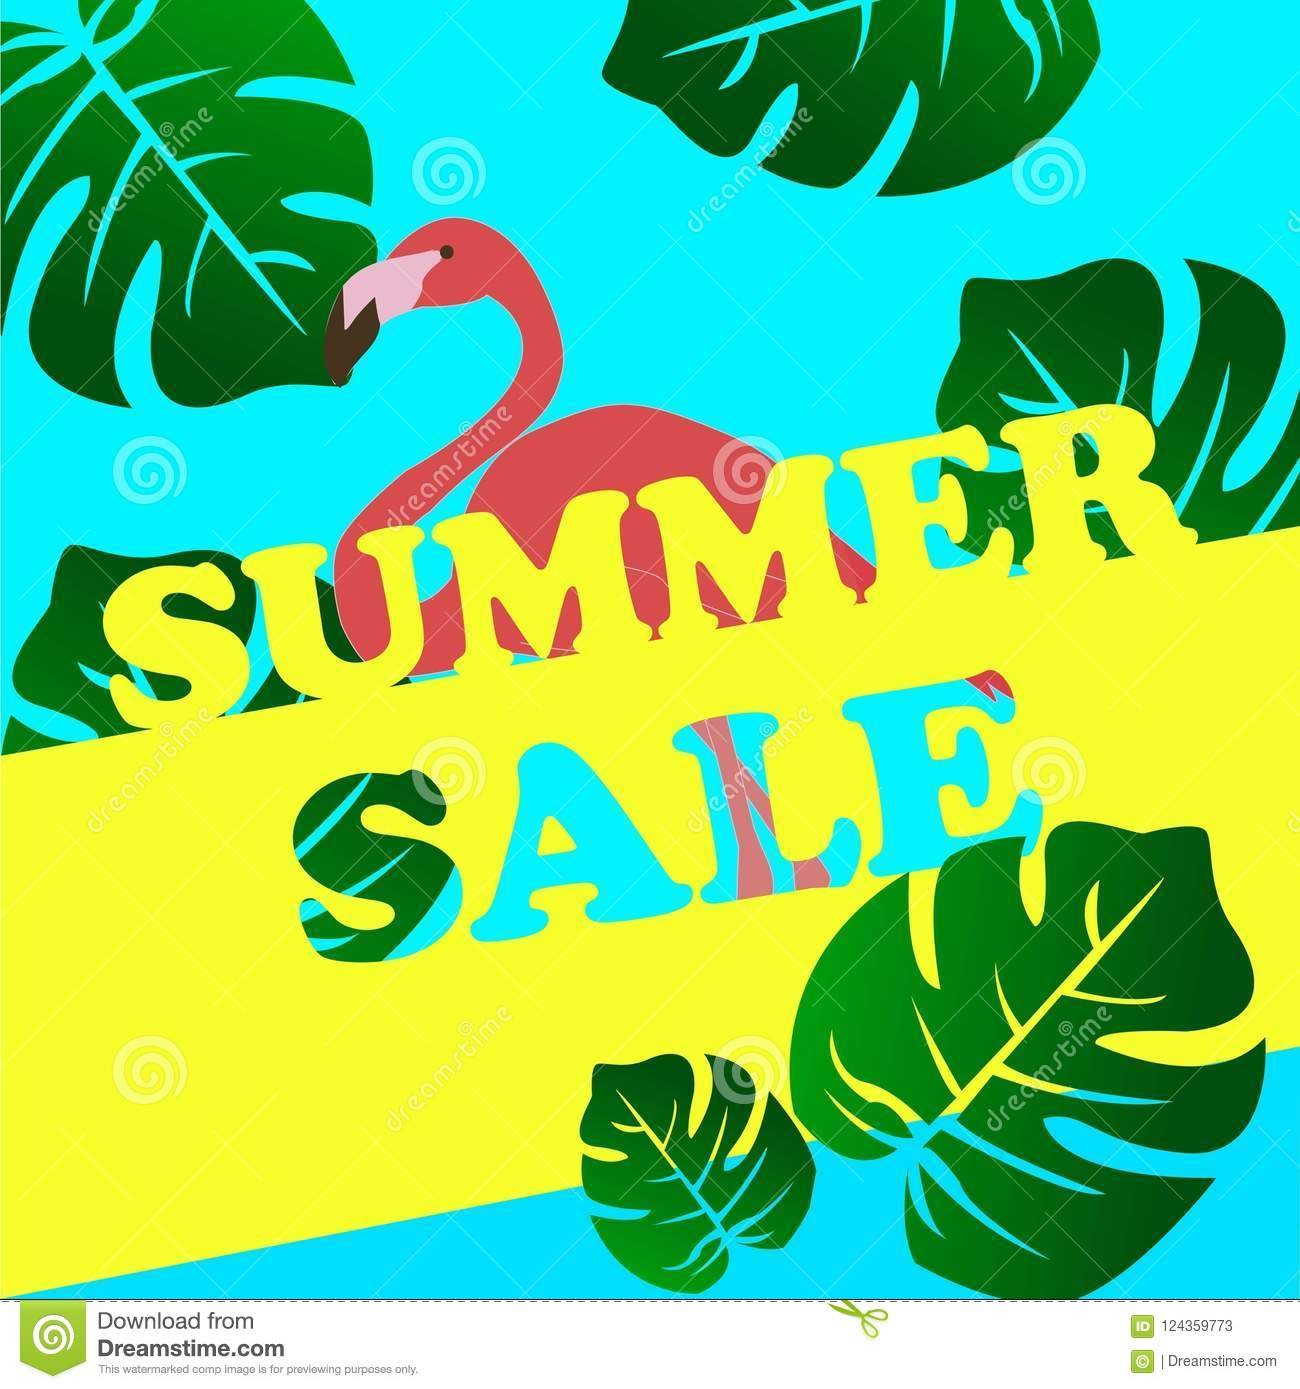 Summer sale banner with flamingo and tropical leaves background